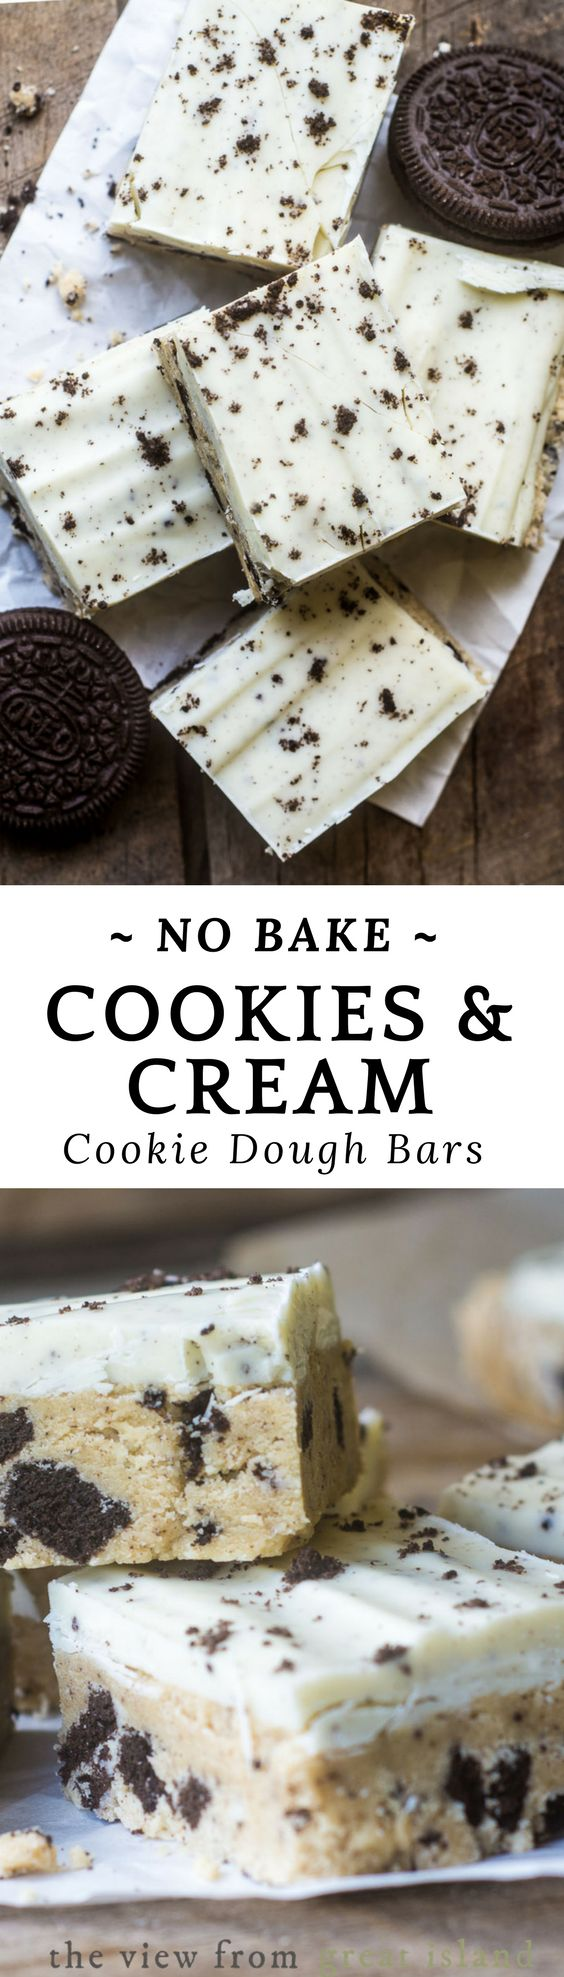 No Bake Cookies and Cream Cookie Dough Bars are a cookie lovers dream, combining crushed Oreos®, classic cookie dough, and a creamy white topping. #nobake #nobakedessert #cookiedough #cookiedoughbars #rawcookiedough #cookiesandcream #oreos #dessert #easydessert